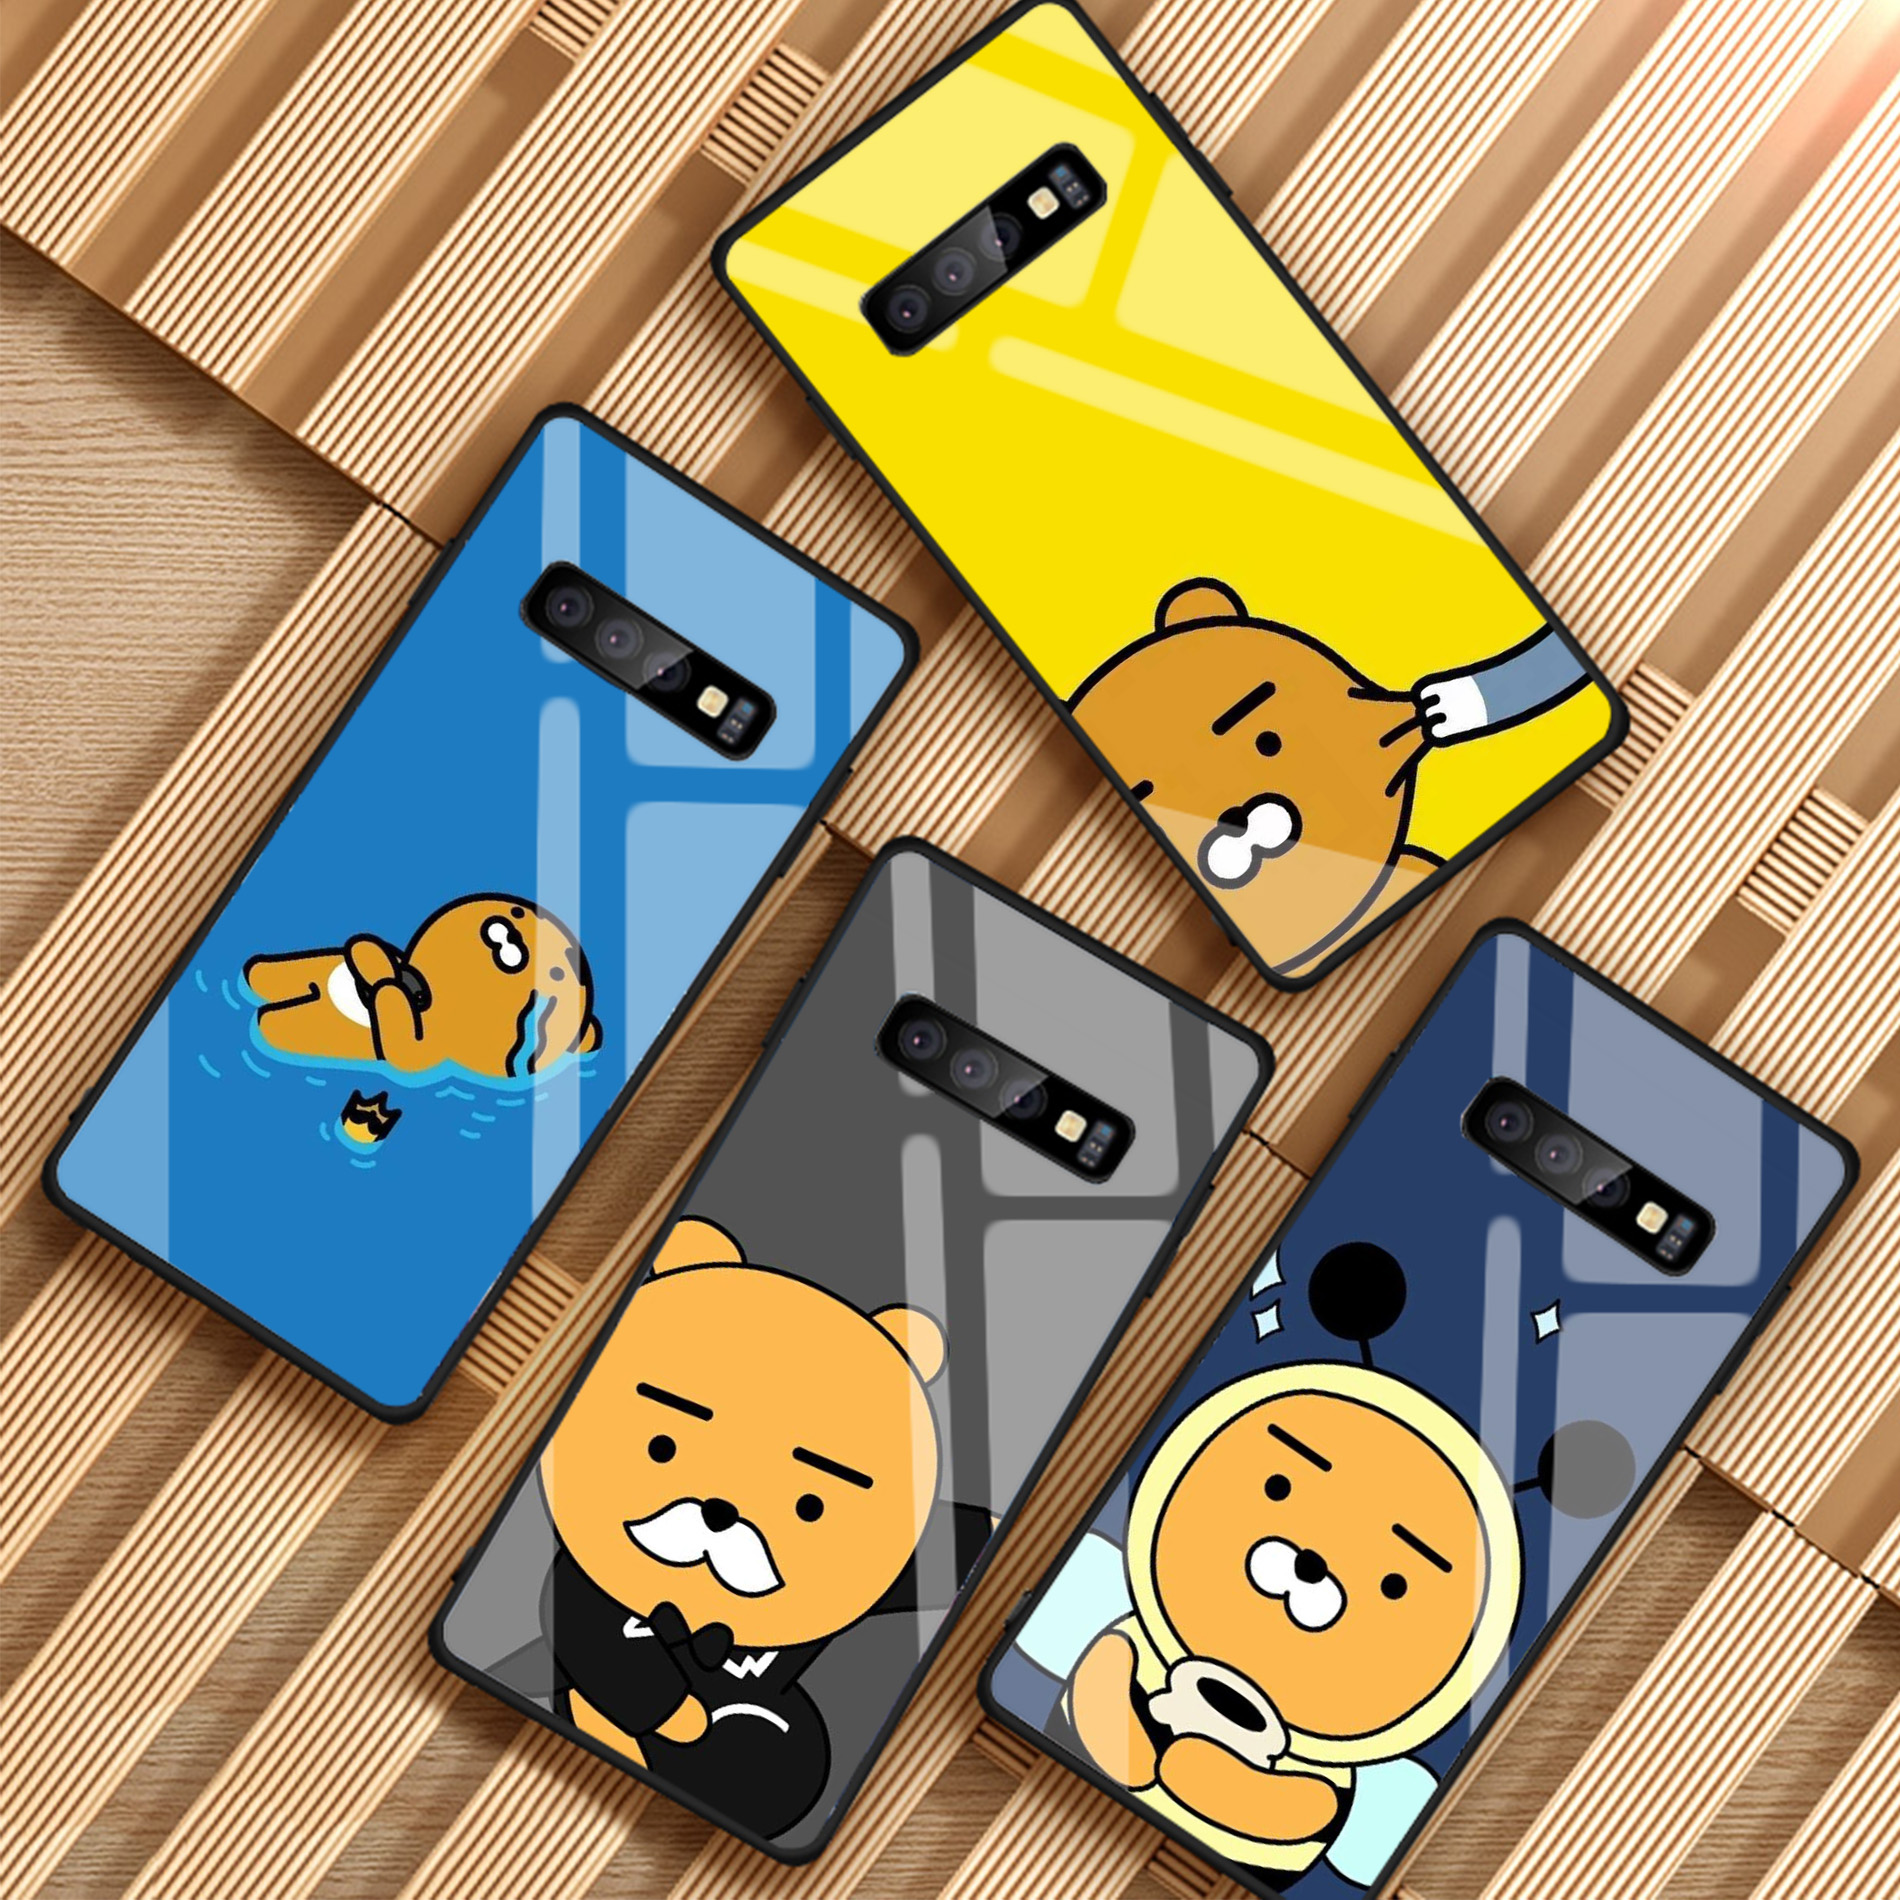 Cartoon Funny Cocoa Case Tempered Glass Phone Case For Samsung Galaxy A6 A6S A8 A8S J6 J8 2018 S8 S9 S10 PLUS NOTE 8 9